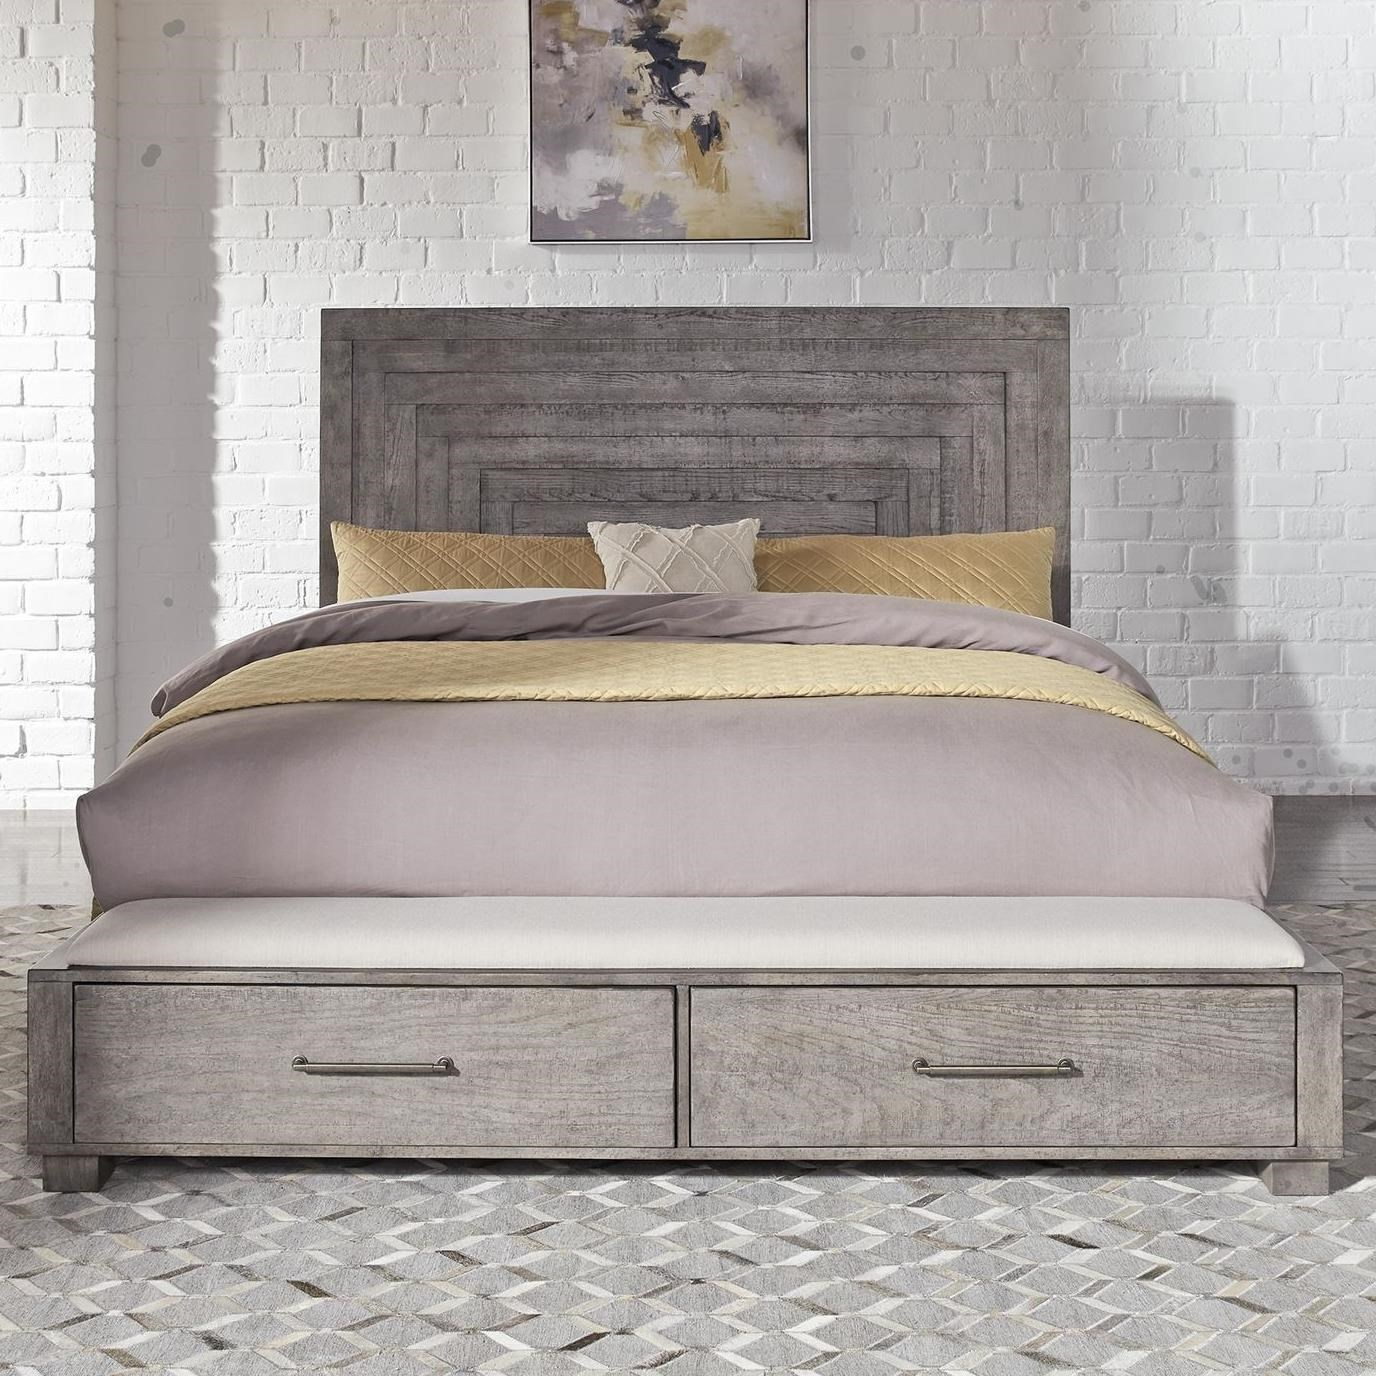 Freedom Furniture Modern Farmhouse Contemporary King Storage Bed With 2 Footboard Drawers Ruby Gordon Home Platform Beds Low Profile Beds